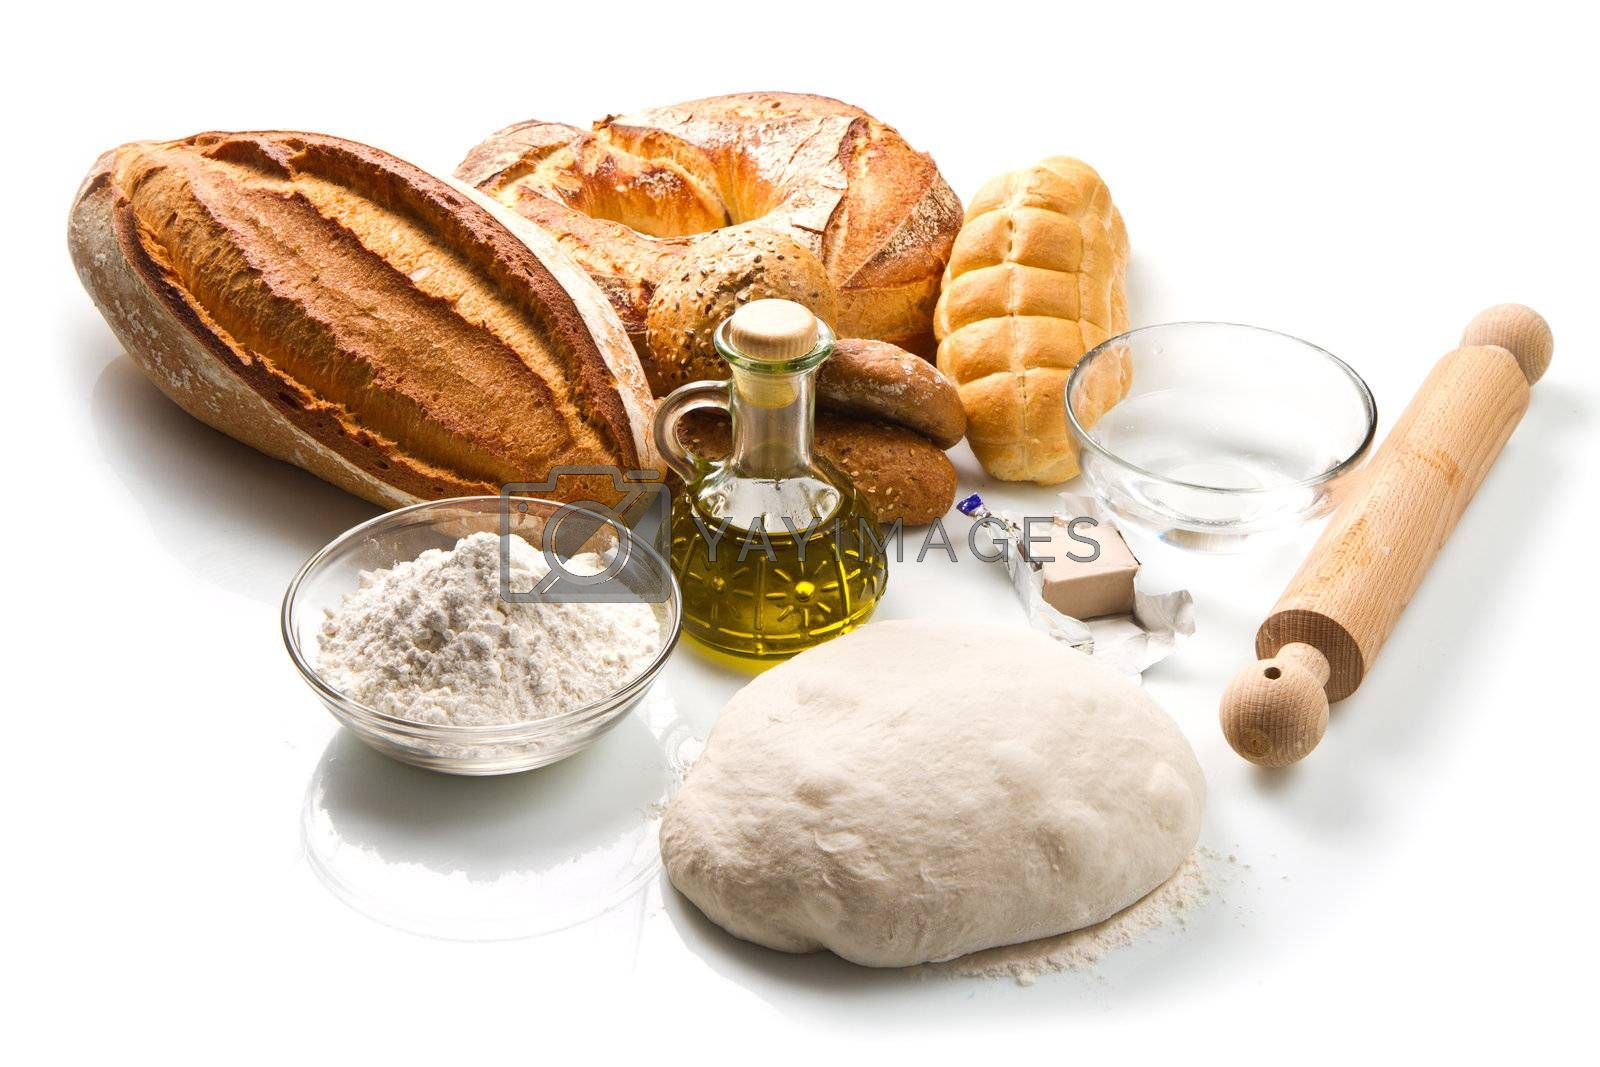 ingredients for homemade bread on white background